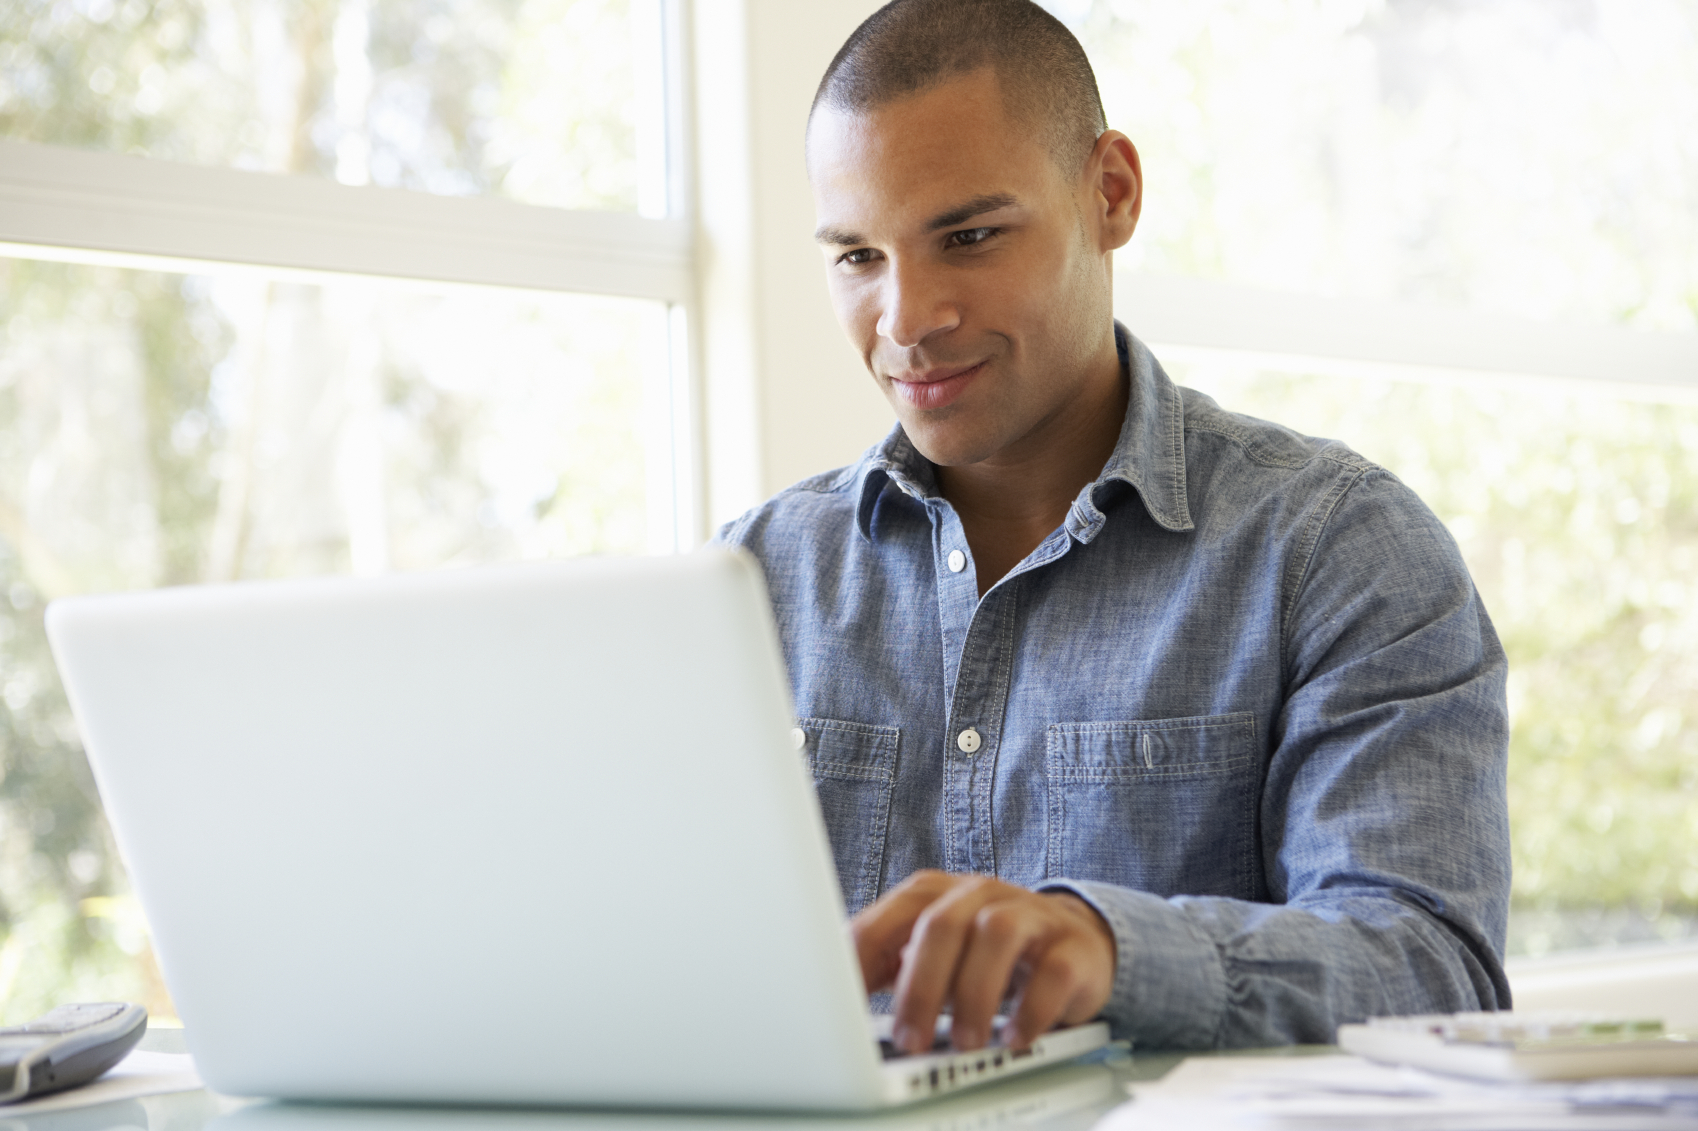 man looking at computer smiling